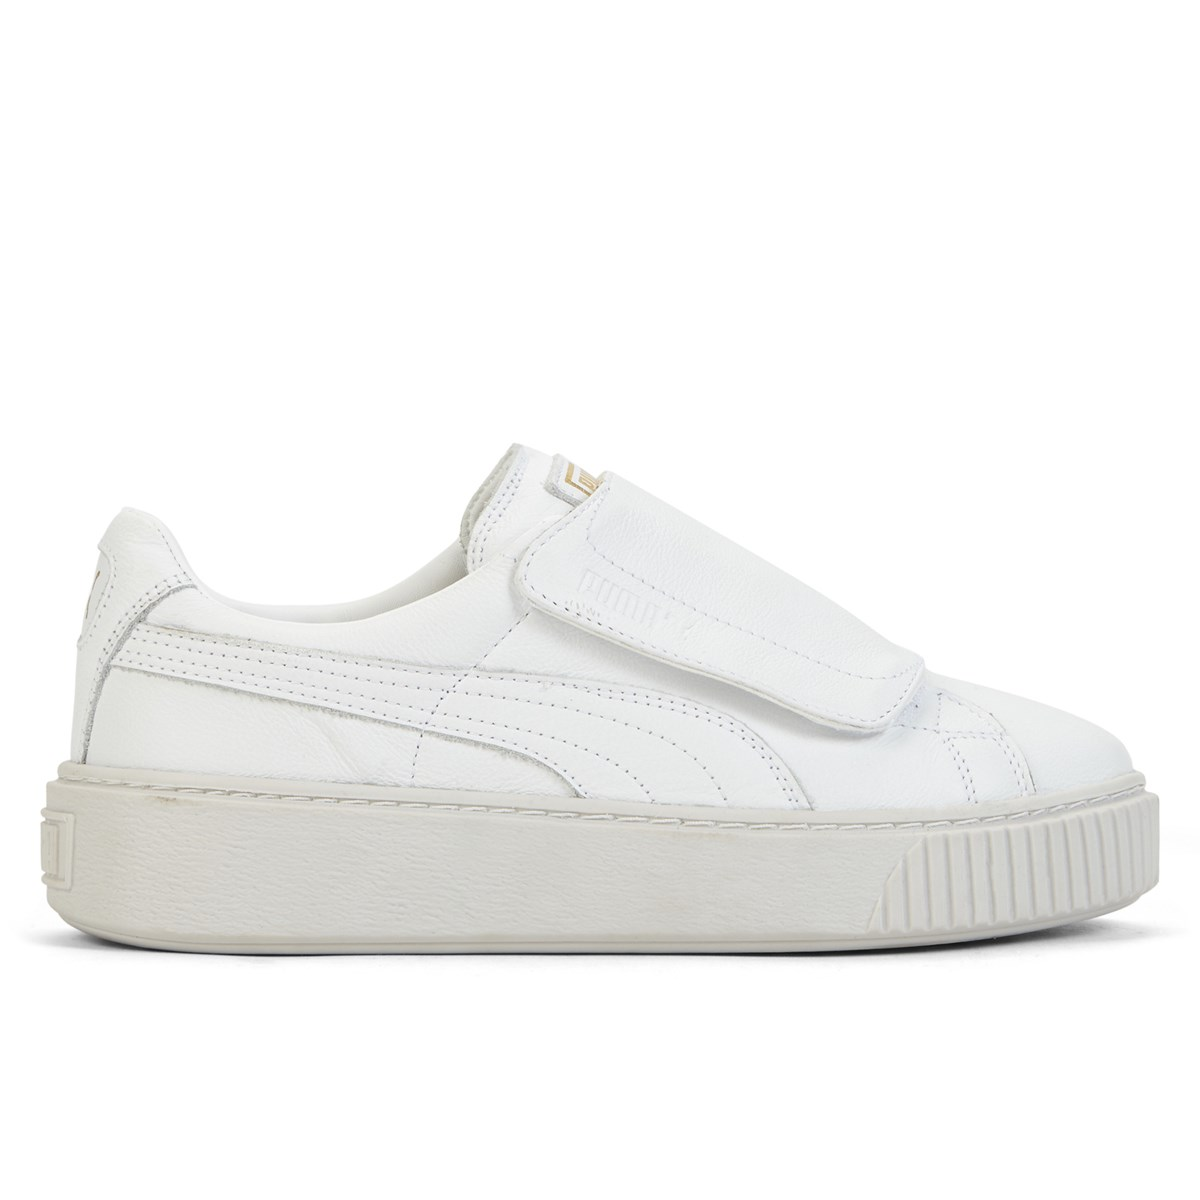 c3b3927c7ea Women s Basket Platform Strap Puma White Sneaker. Previous. default view ...